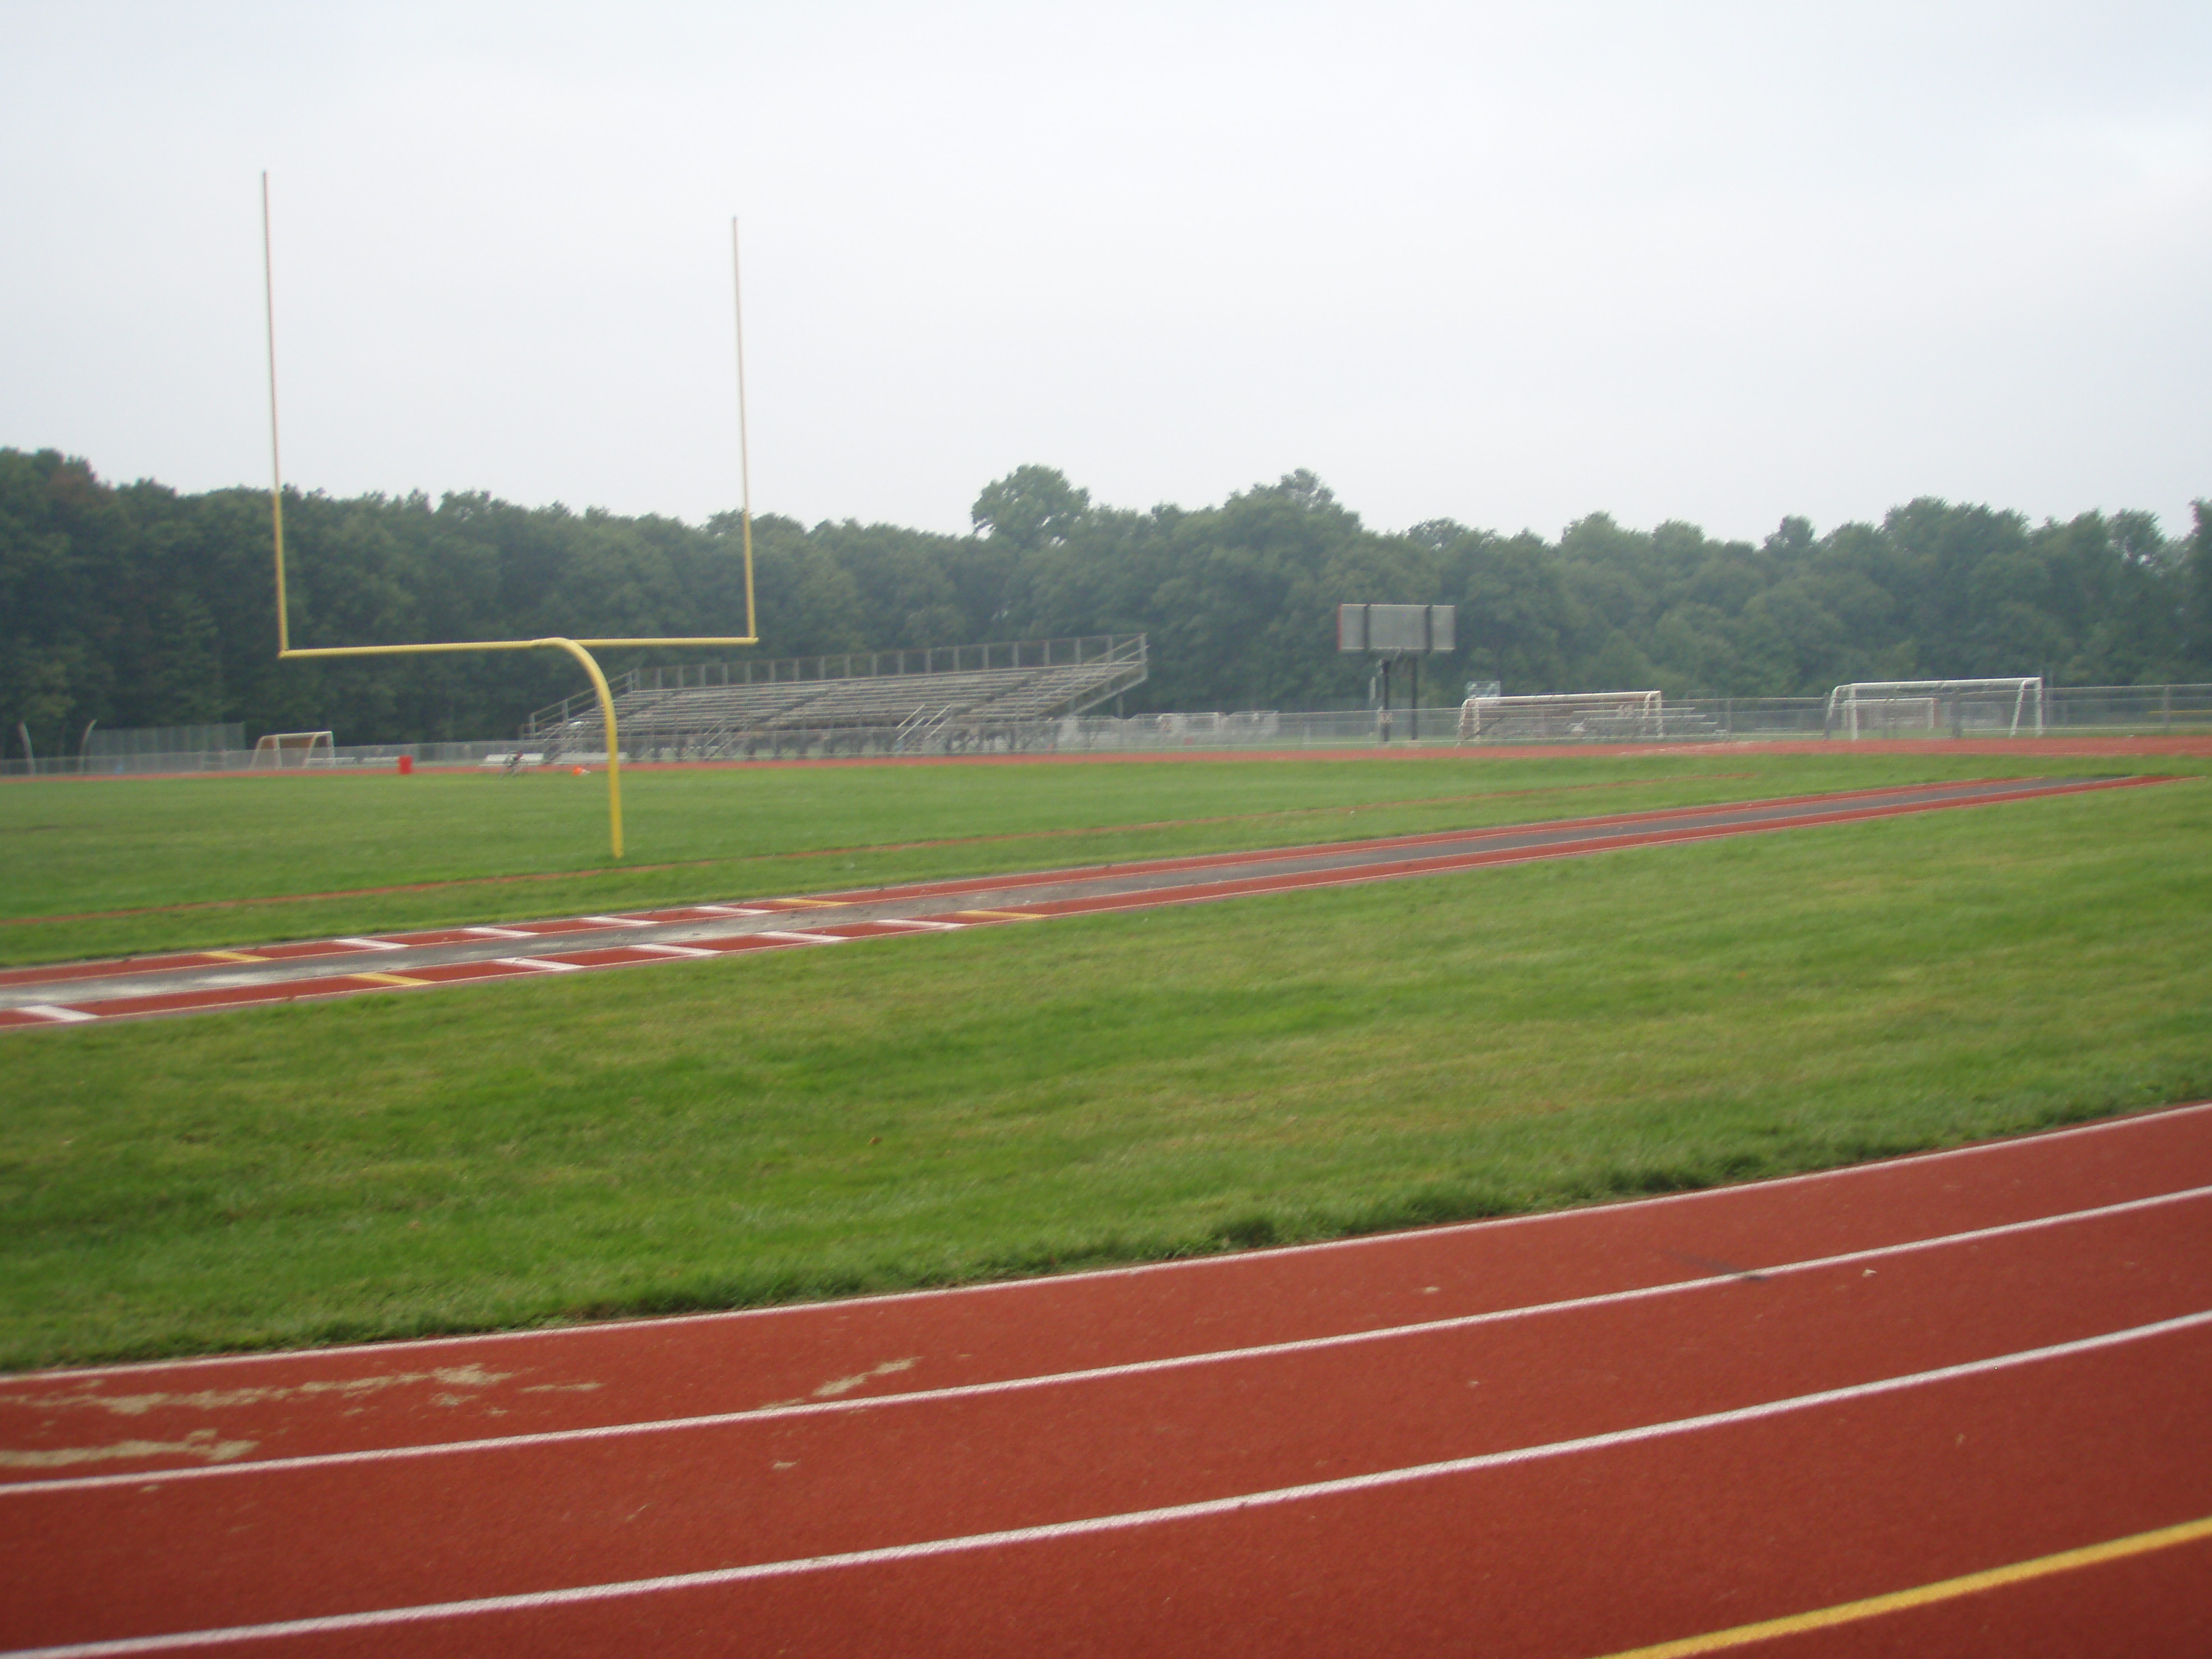 Working out on high school fields to stay sharp is far from life in NFL football facilities for veteran free agents.